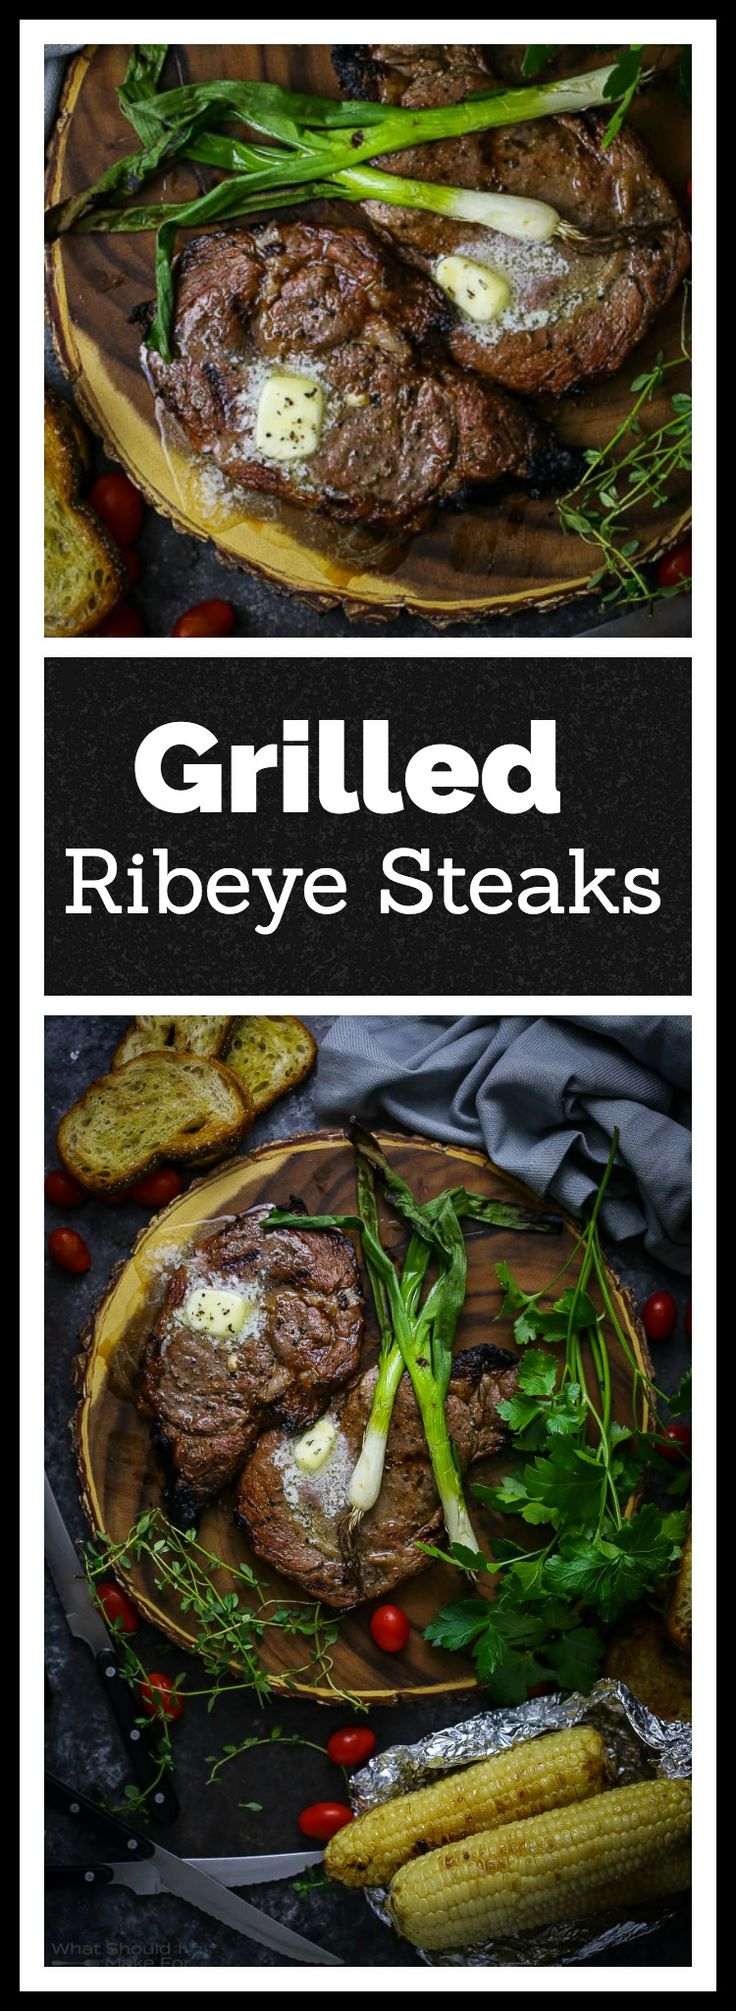 Impossibly juicy and flavorful, these ribeye steaks are enhanced by a simple marinade, grilled in minutes and topped with a pat of butter for an extra dash of delicious.